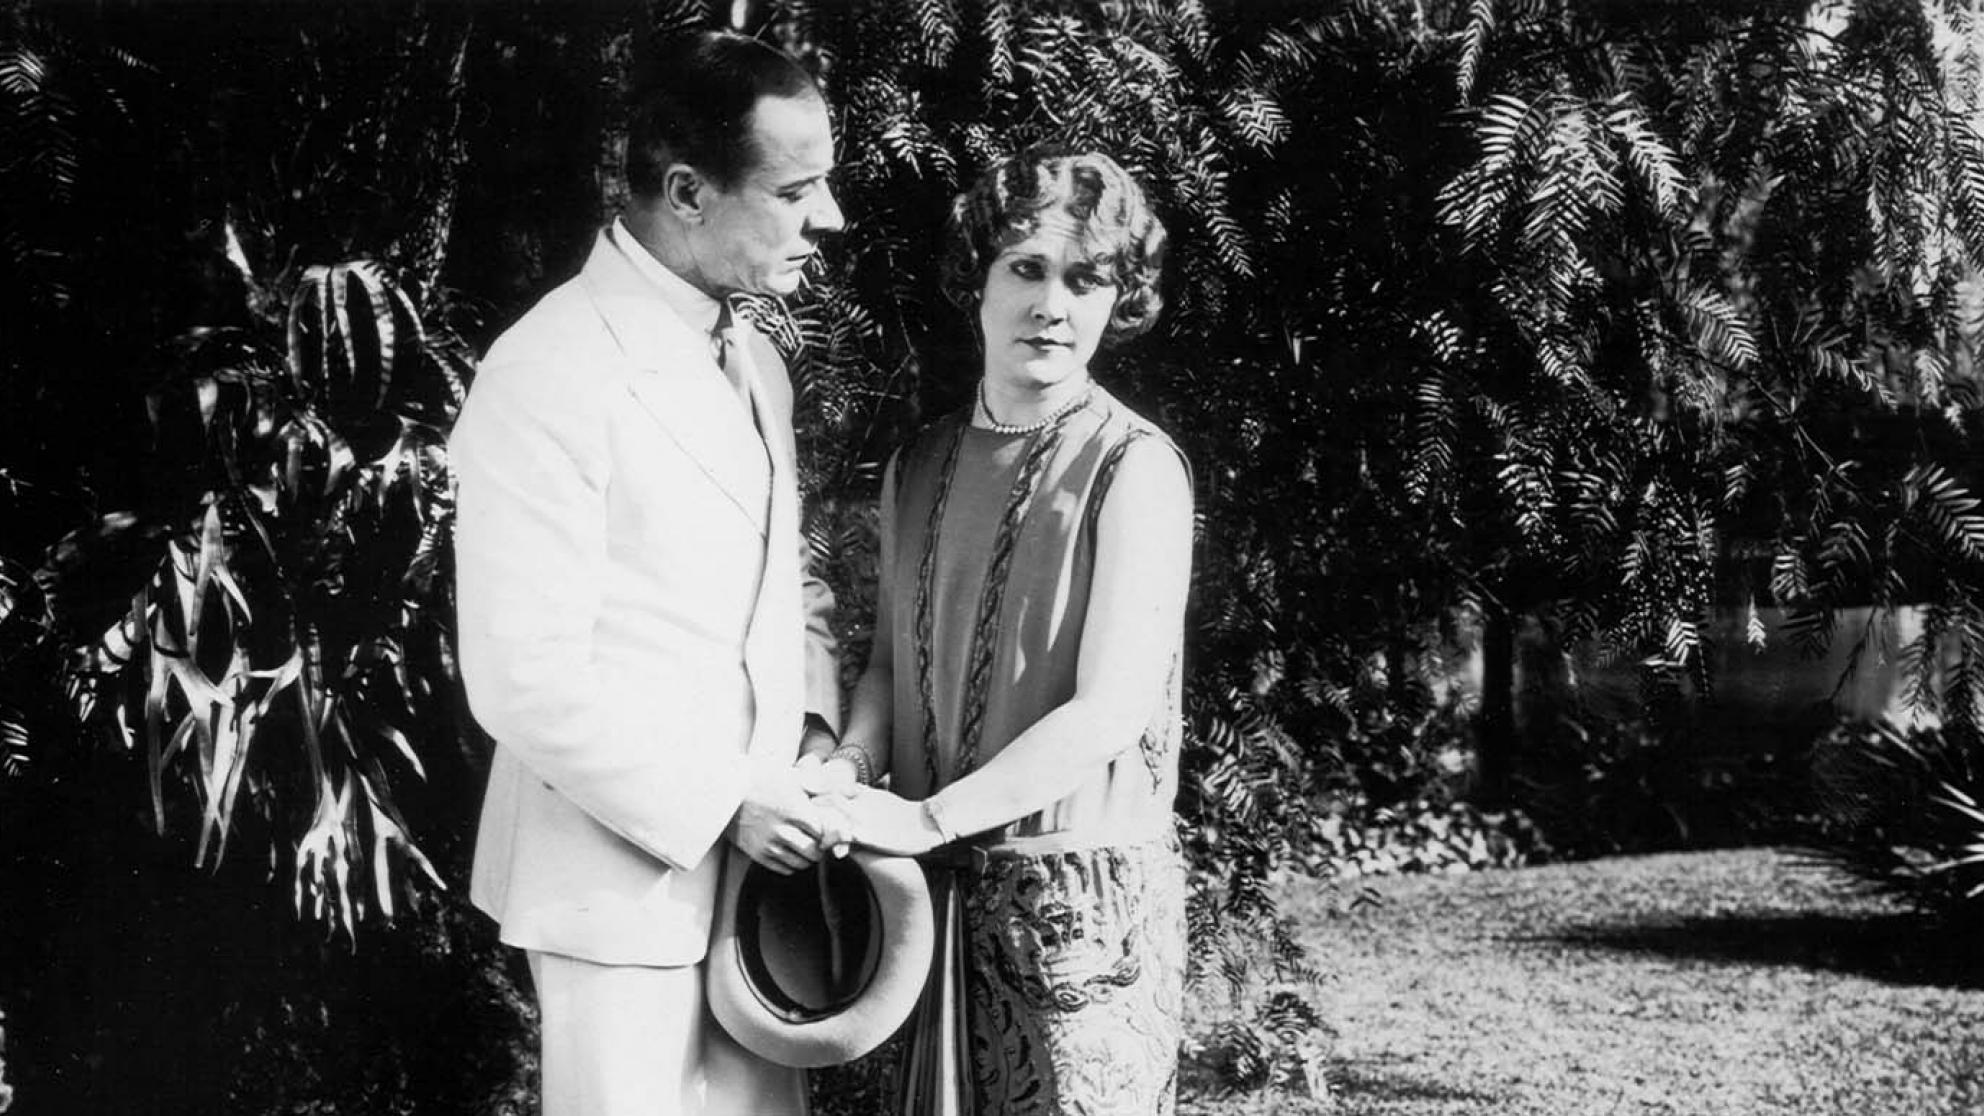 A man holds hands with Louise Lovely in a garden in a scene from the silent film Jewelled Nights.